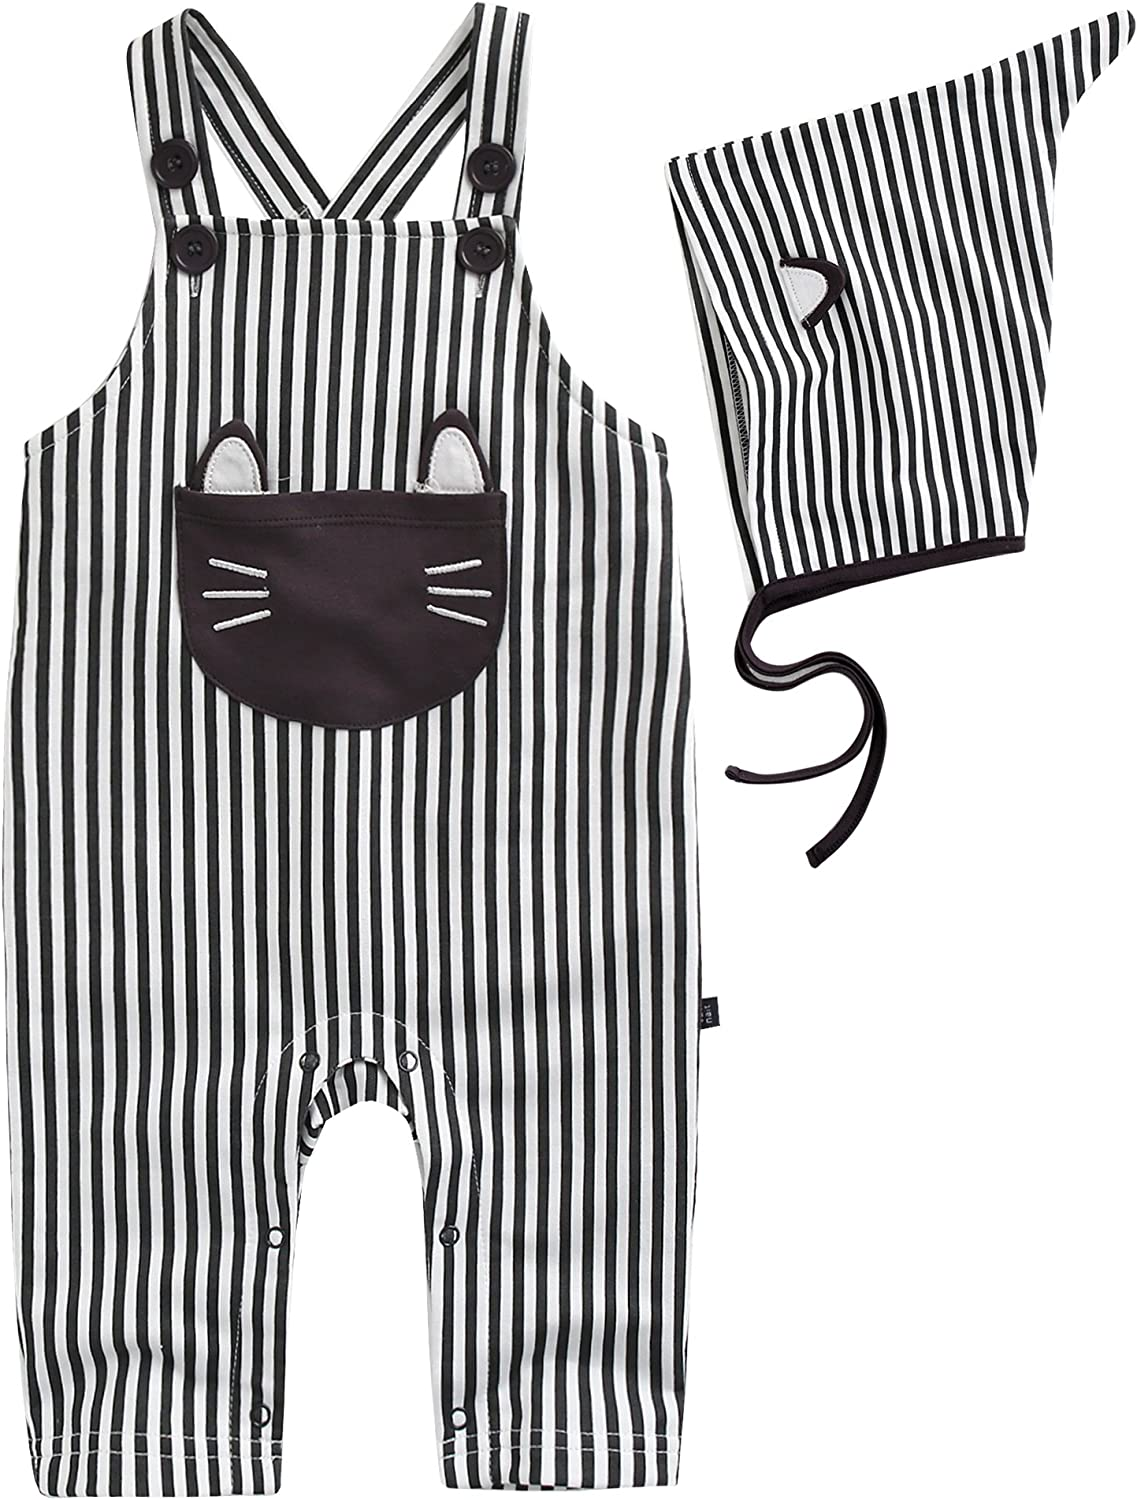 Vaenait baby 0-24 Months Boys Girls Striped Overall Pants with Hat Kitty